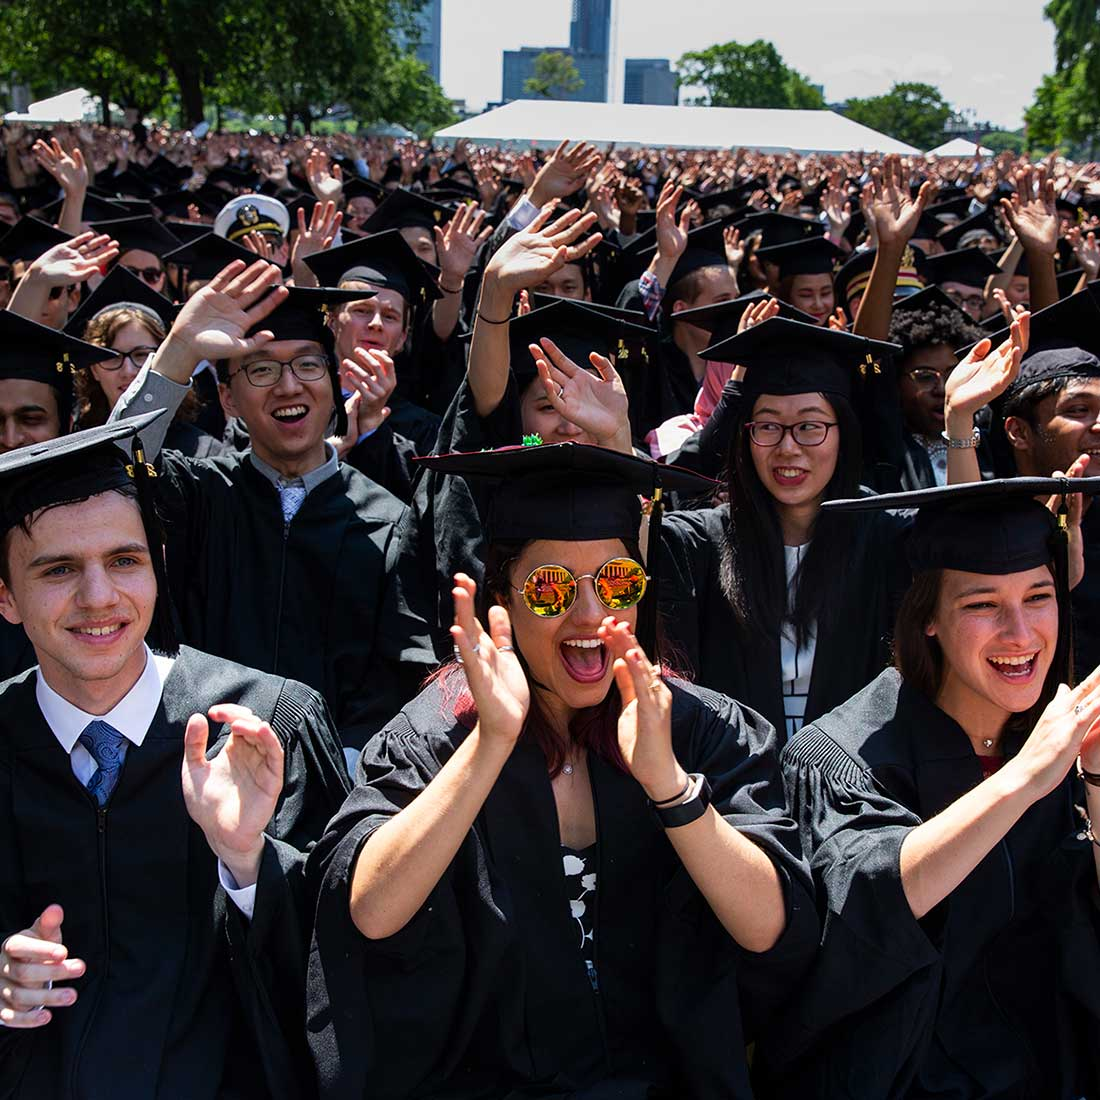 MIT graduates cheer and clap in audience; photo: Dominick Reuter